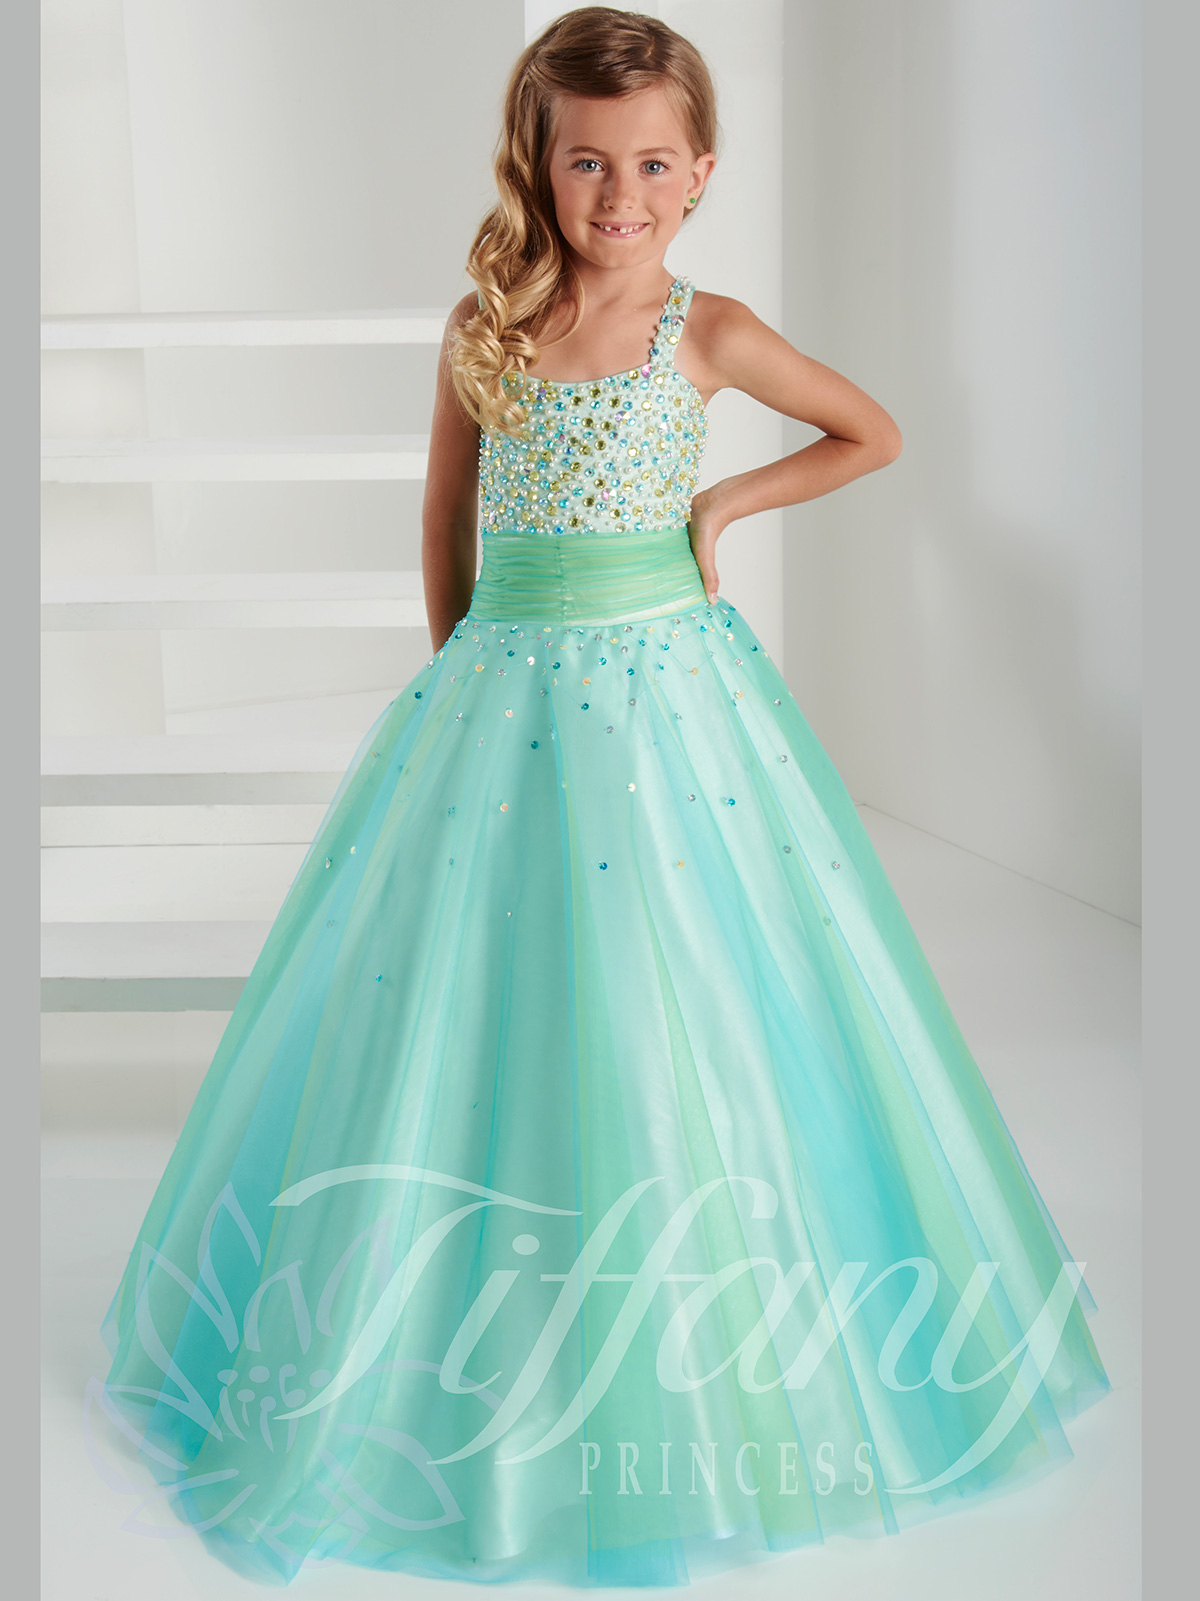 Immediate Shipping In Stock Girls Pageant Dresses  PageantDesigns.com